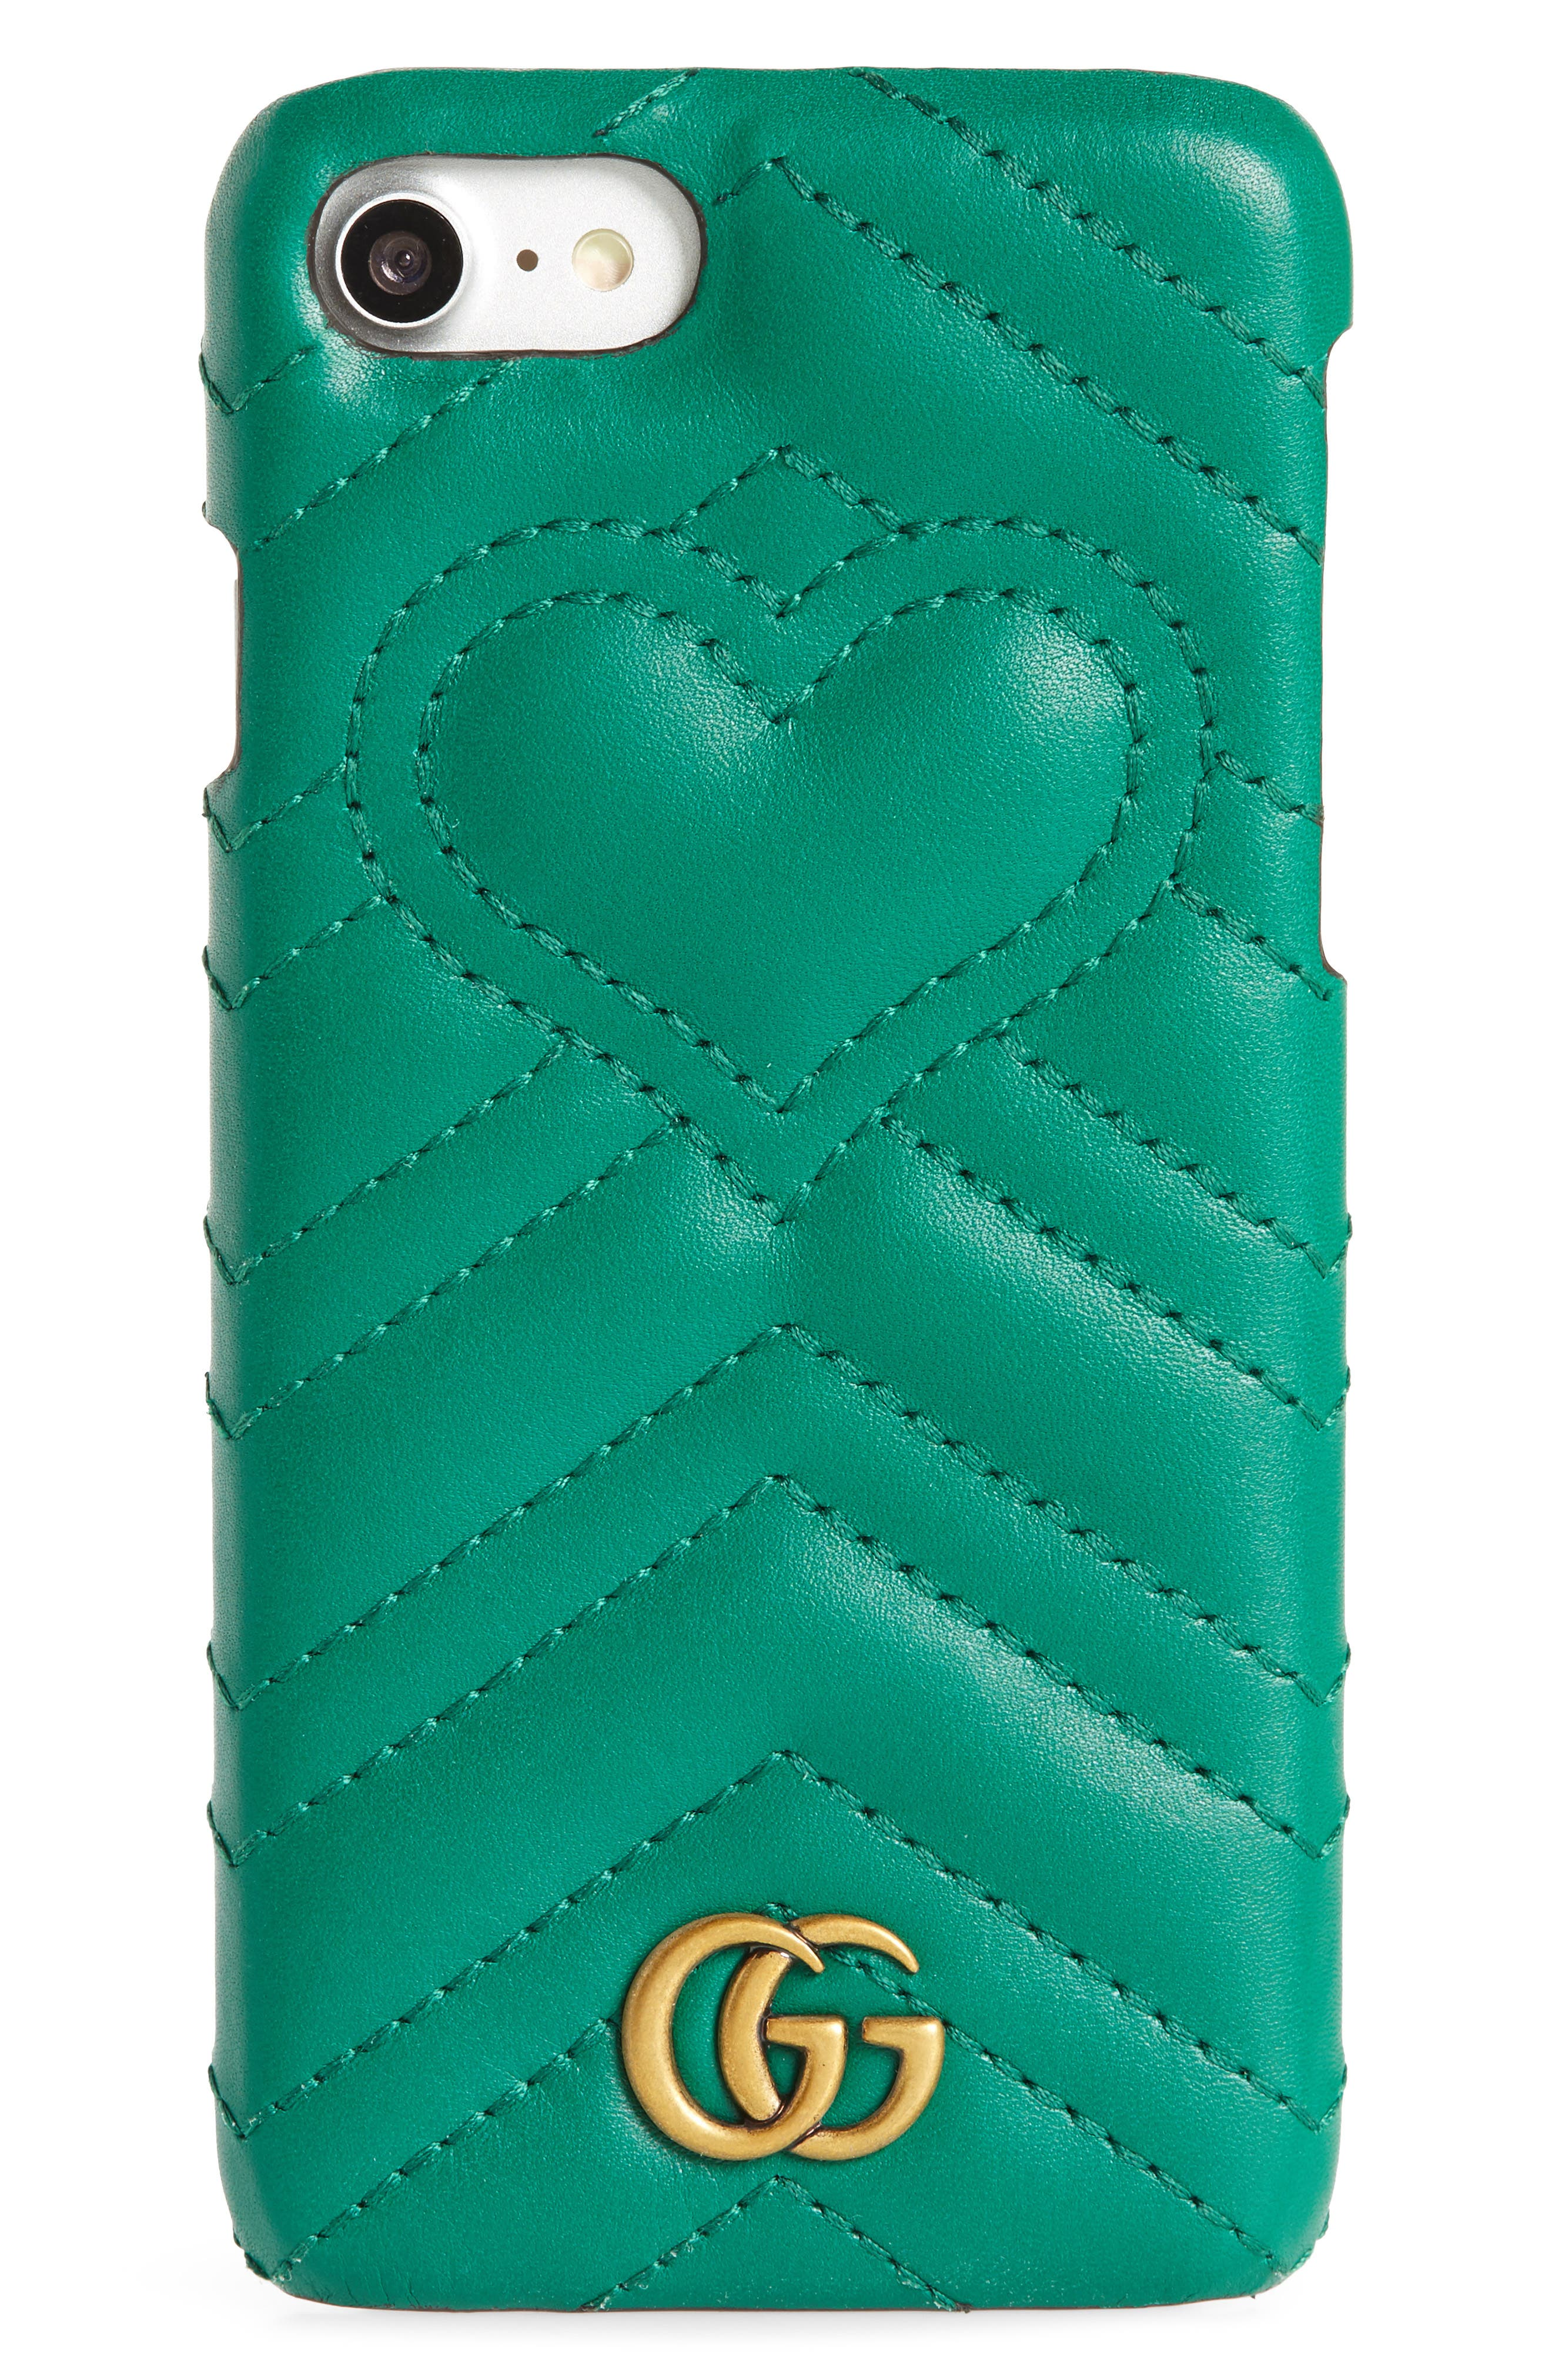 GG Marmont Leather iPhone 7 Case,                             Main thumbnail 1, color,                             302